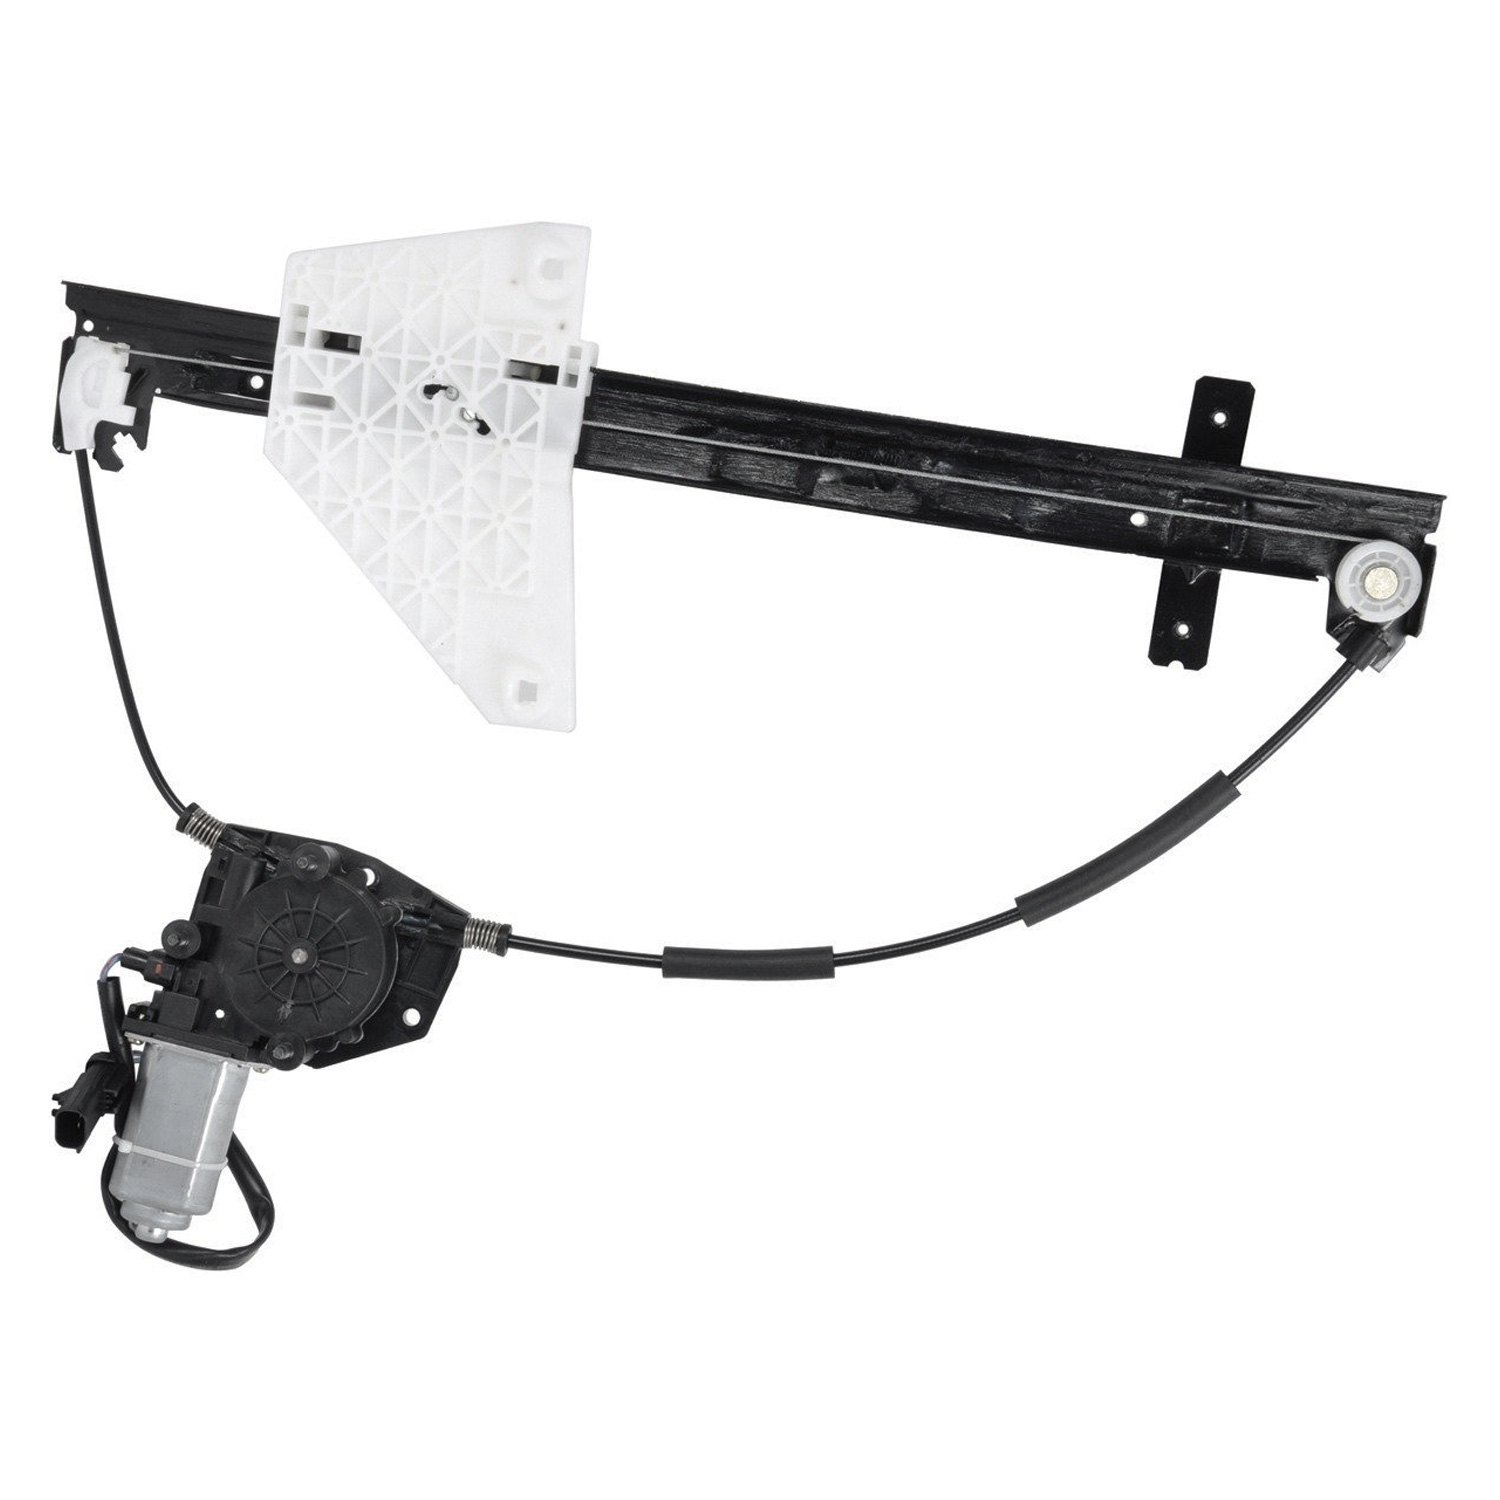 Cardone select jeep grand cherokee 2000 power window for Window regulator and motor assembly